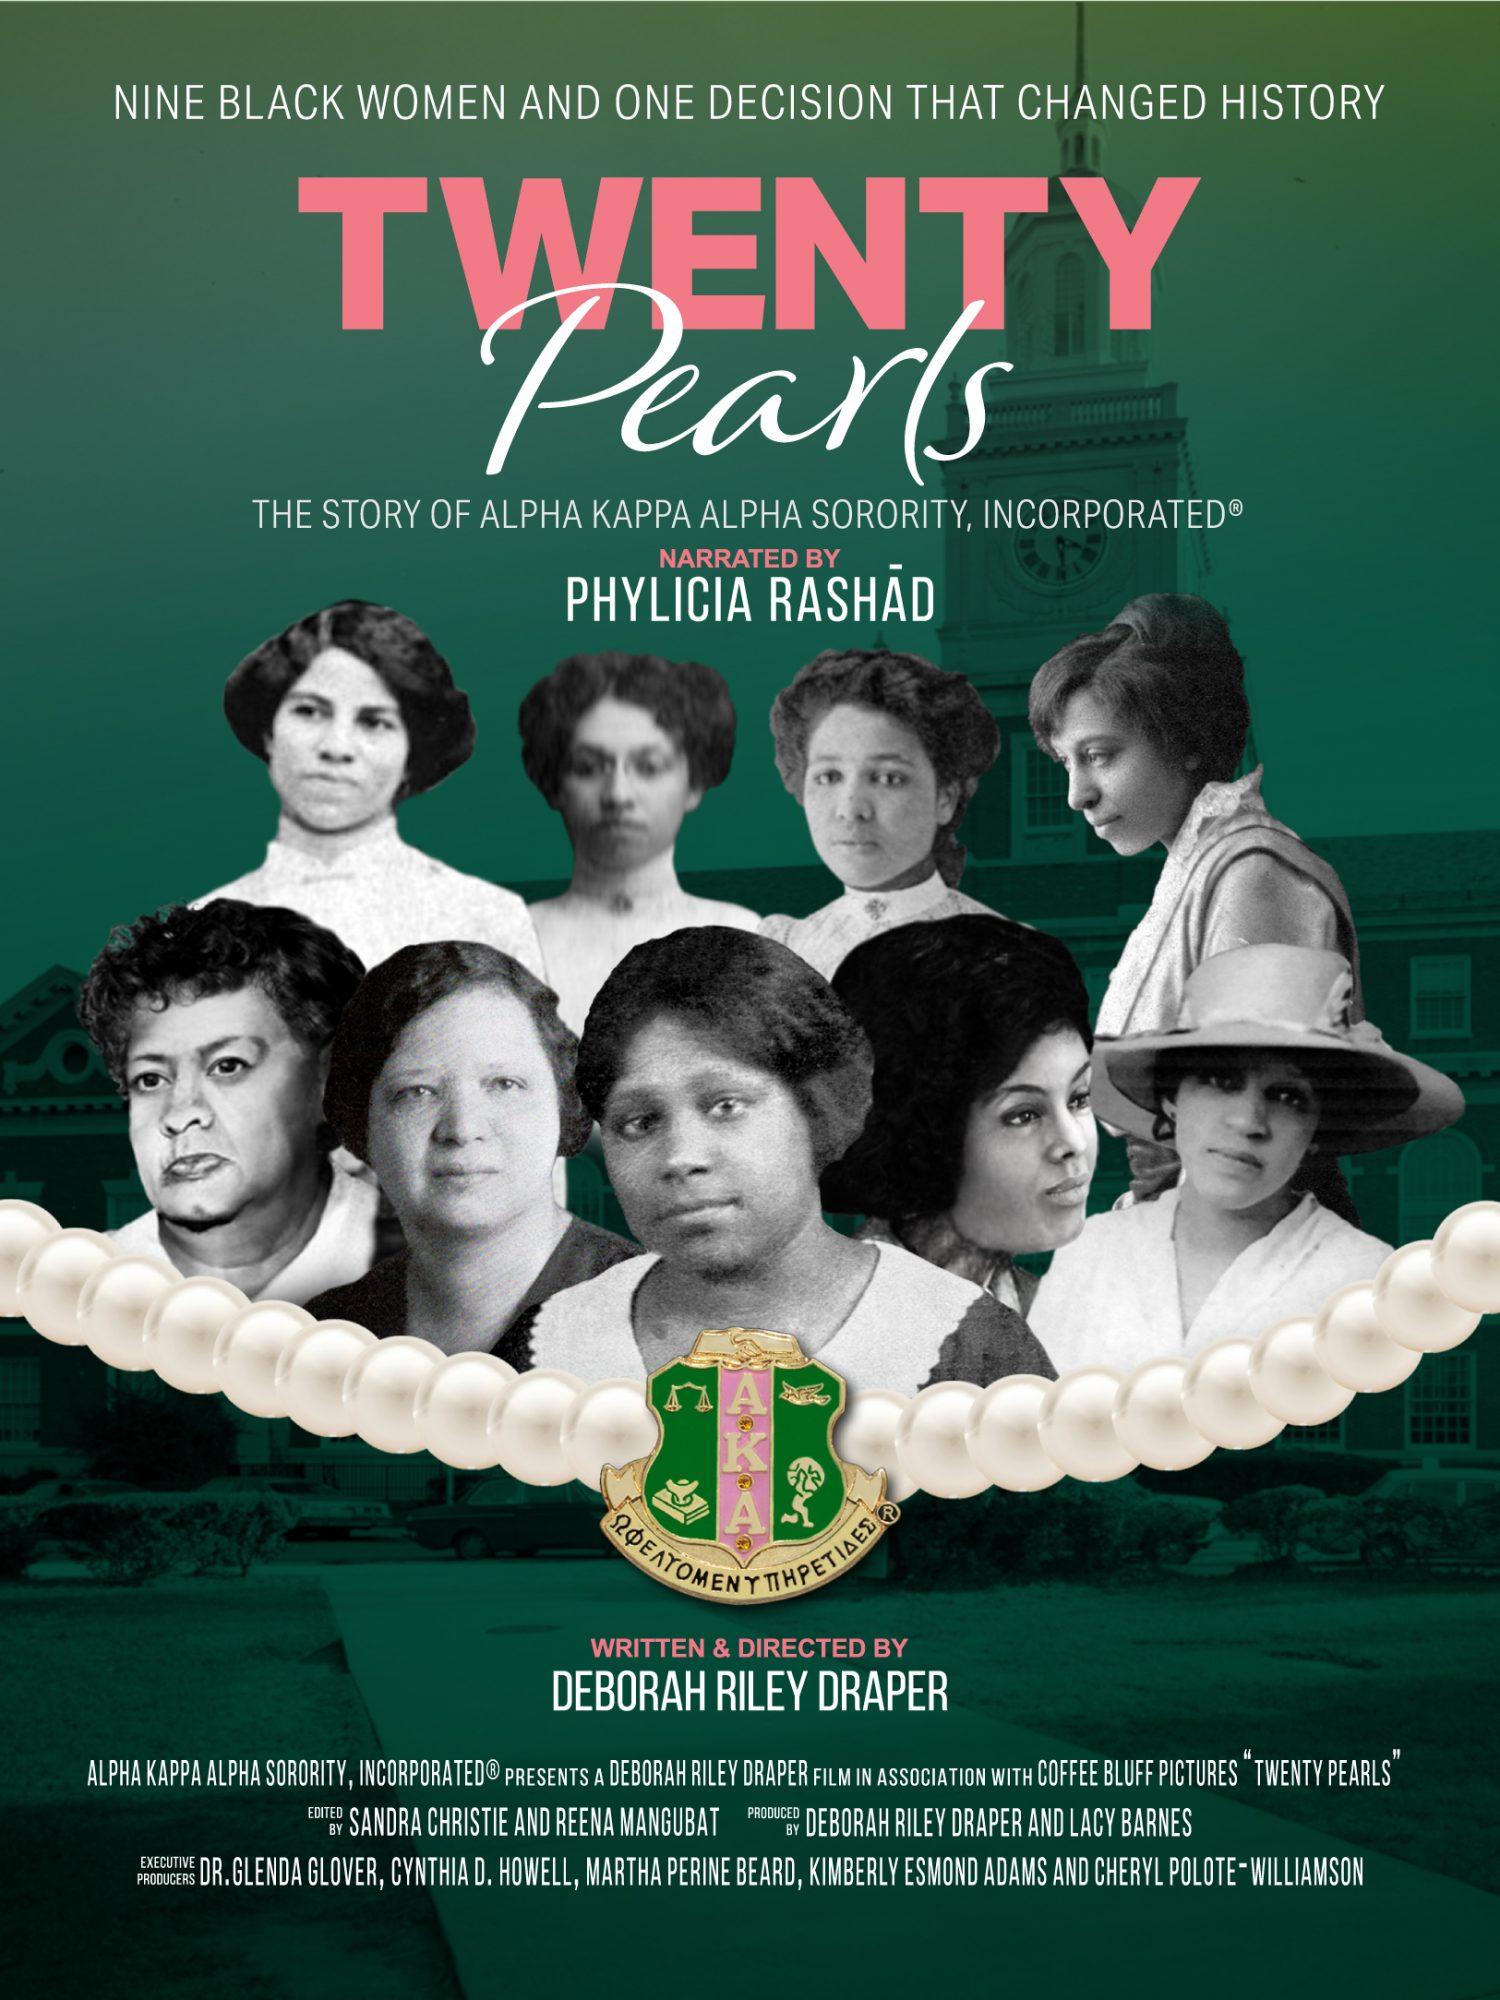 Twenty Pearls tells the universal and historic stories that surround the founding of the sorority and also the intimate stories of some of its members.